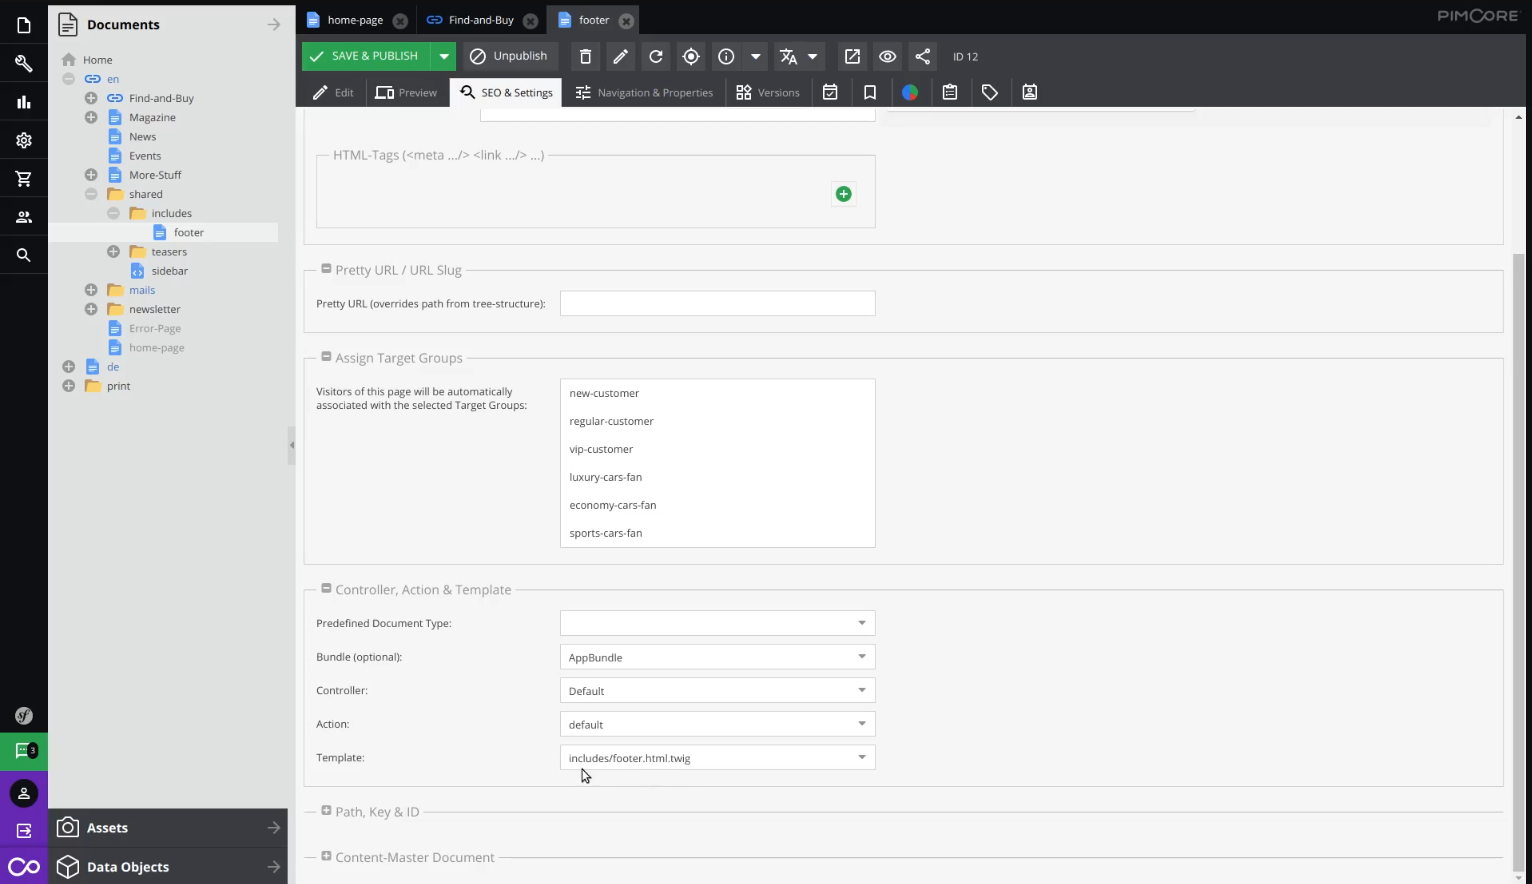 Editing SEO & settings for footer on landing page in Pimcore